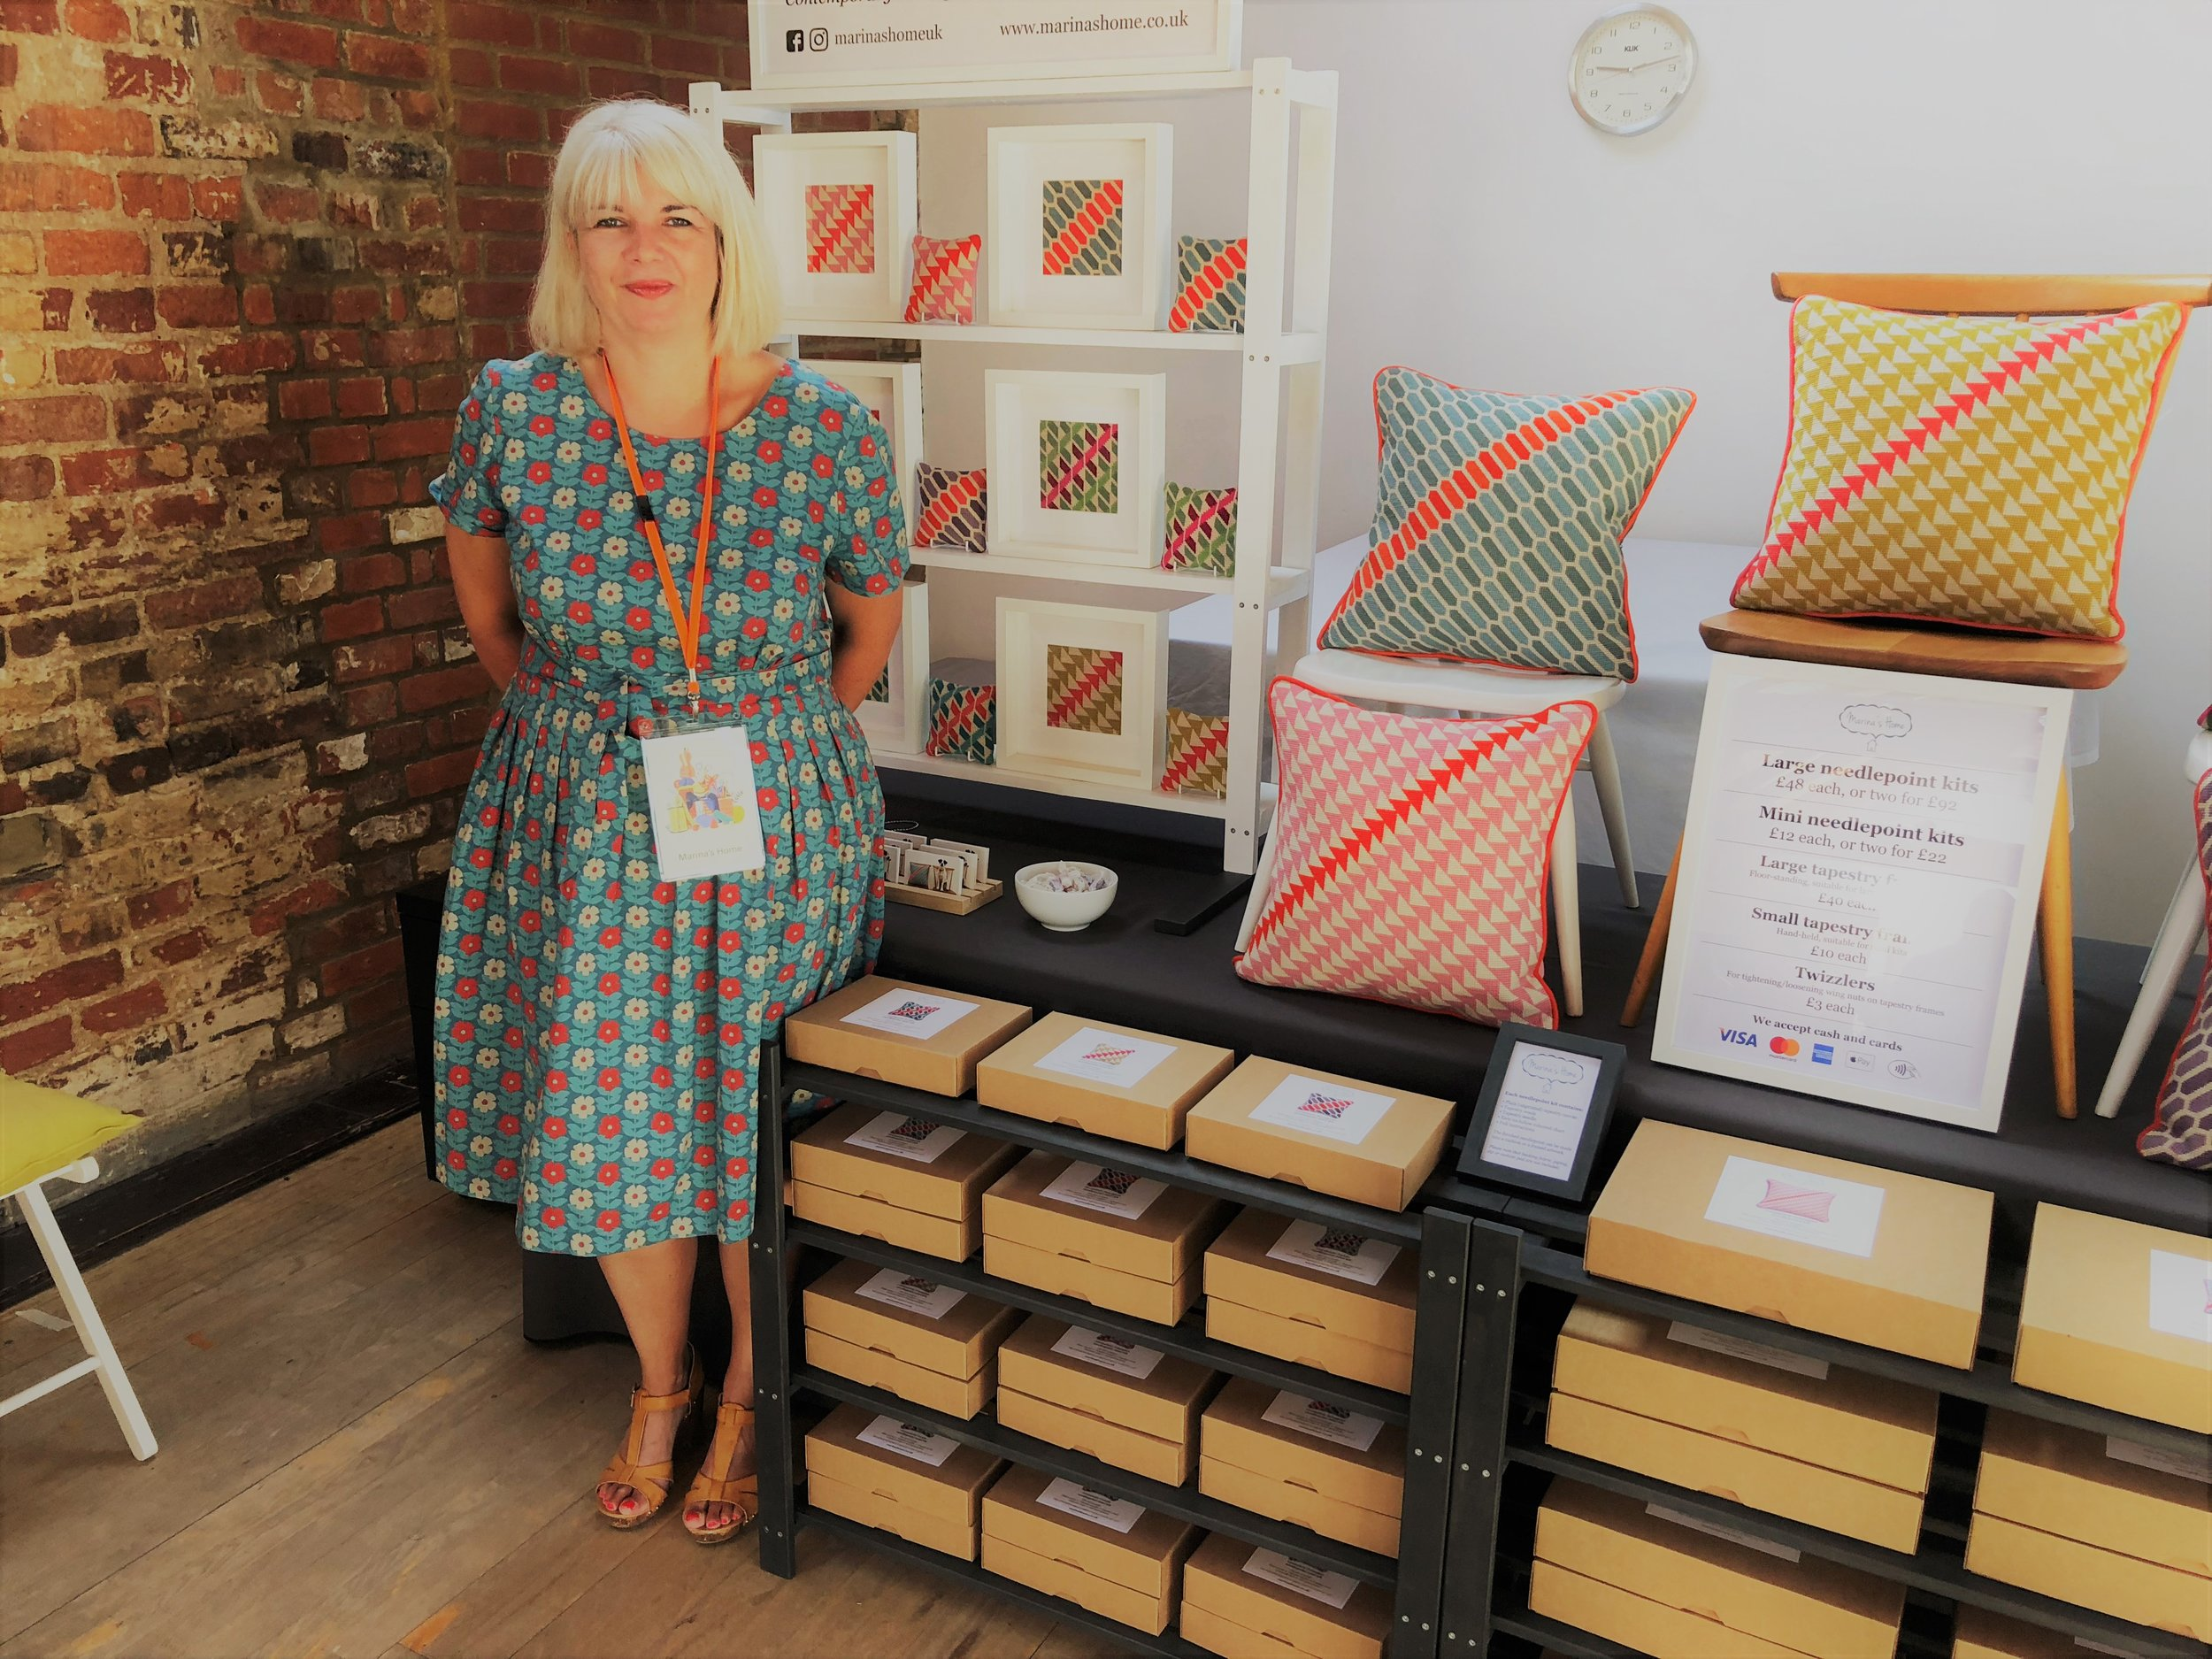 My friend Debbie (aka Skein Queen) - her outfit coordinated nicely with my blue and orange Geometric Hexagons design!